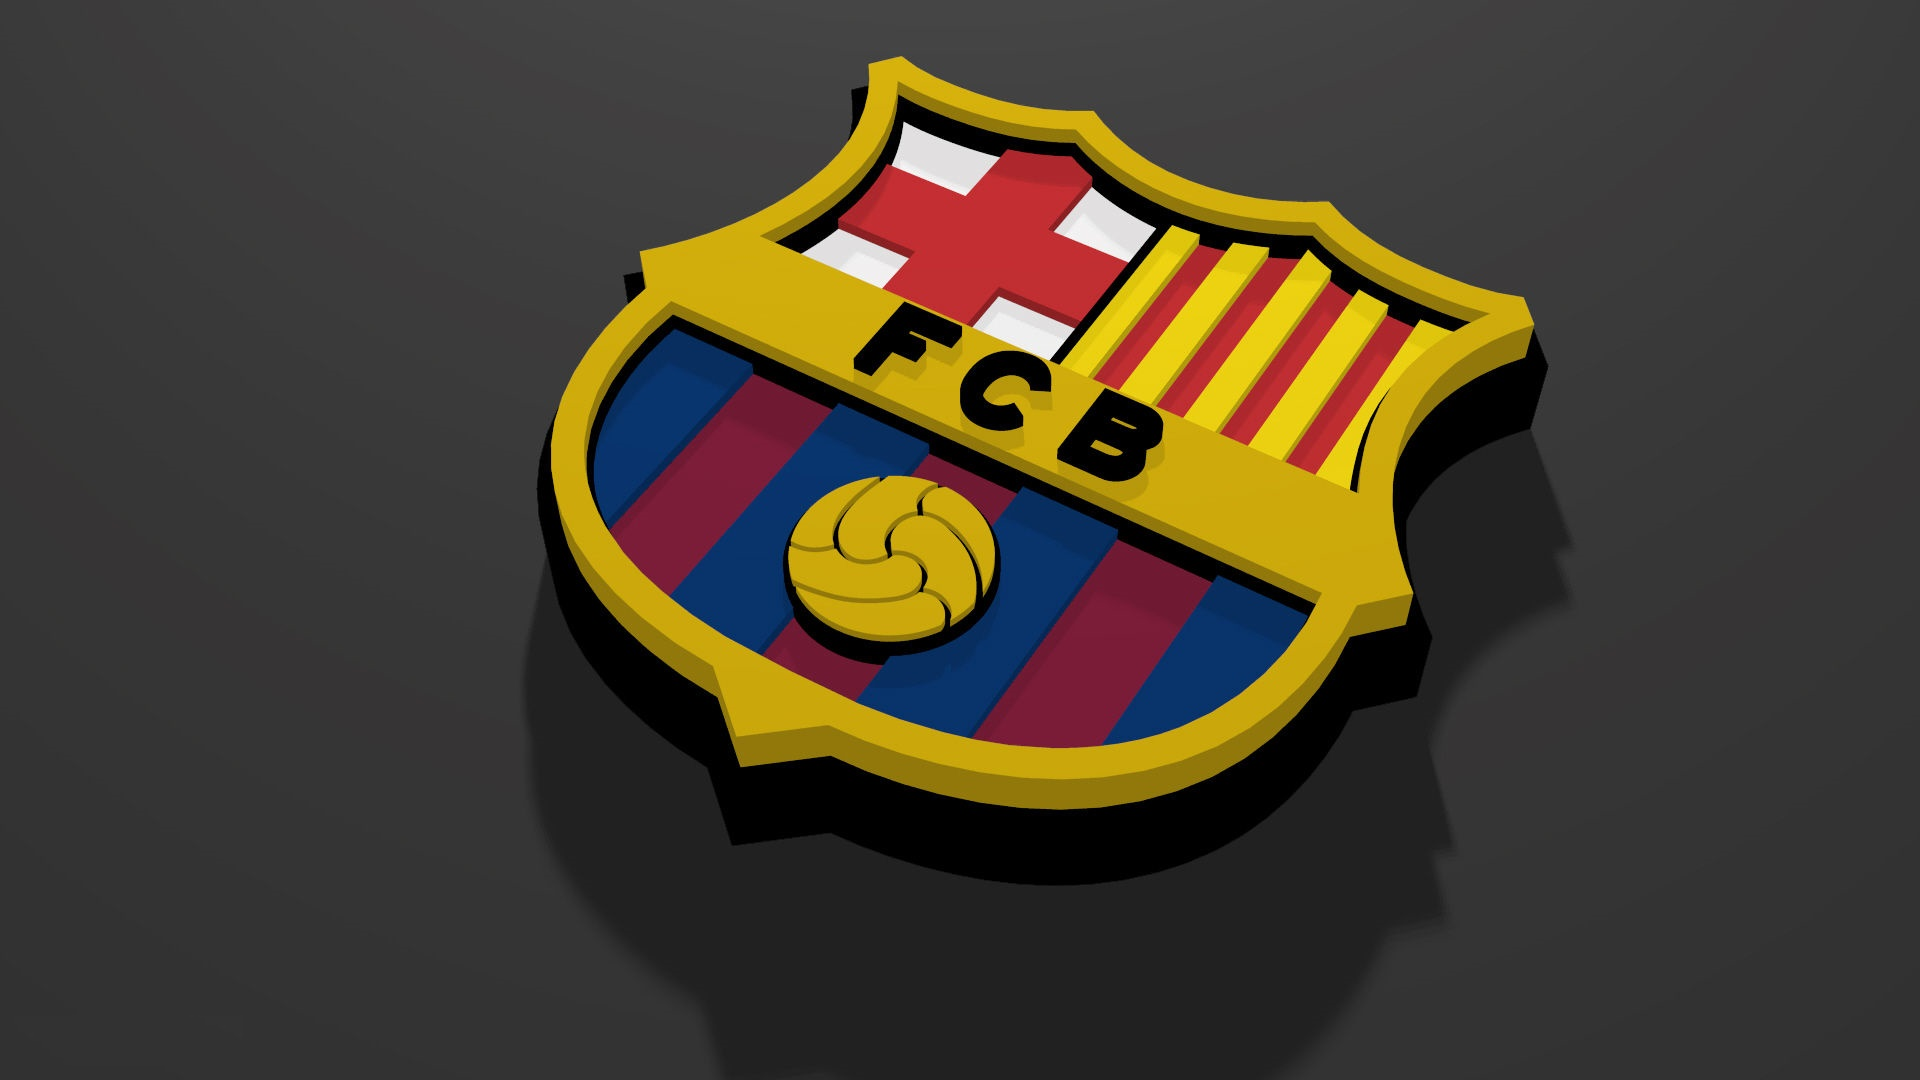 Wallpaper Fc Barcelona Posted By Ryan Johnson